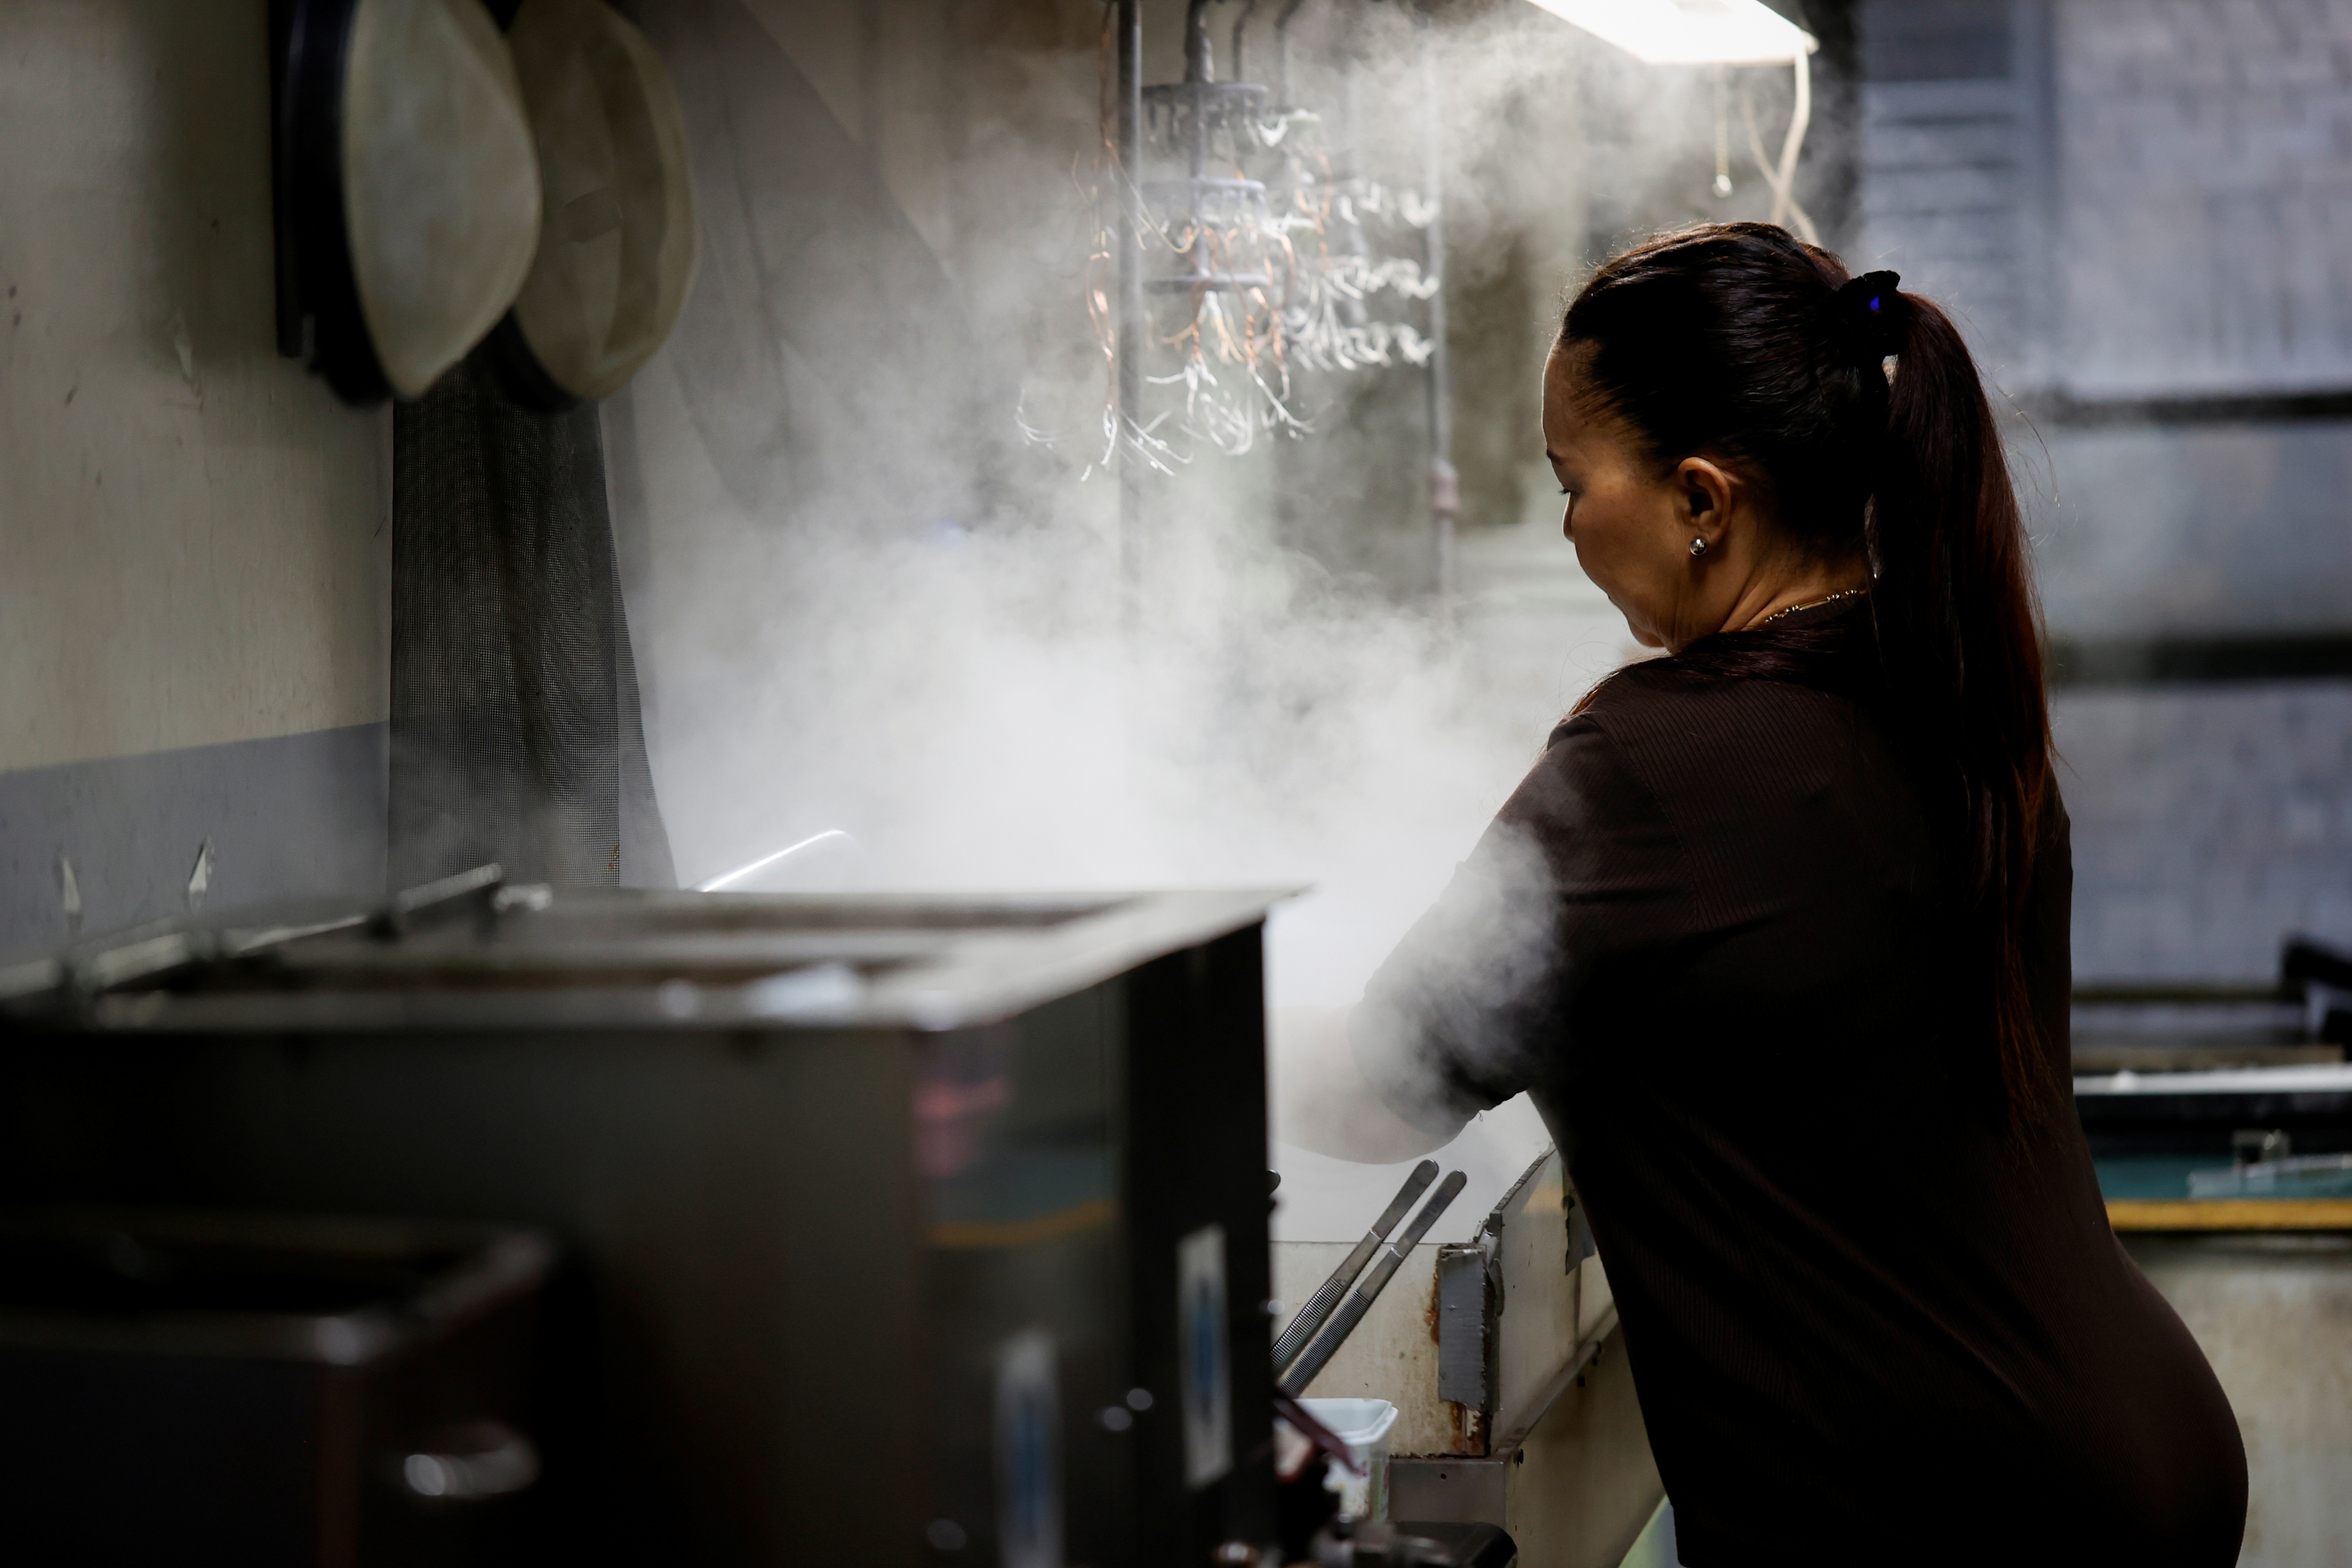 A Jewelry worker works at a steam cleaning machine in a workshop at RFG Manufacturing Riviera jewelry design facility in Manhattan in New York City, New York, U.S., September 30, 2021. Picture taken September 30, 2021.  REUTERS Mike Segar